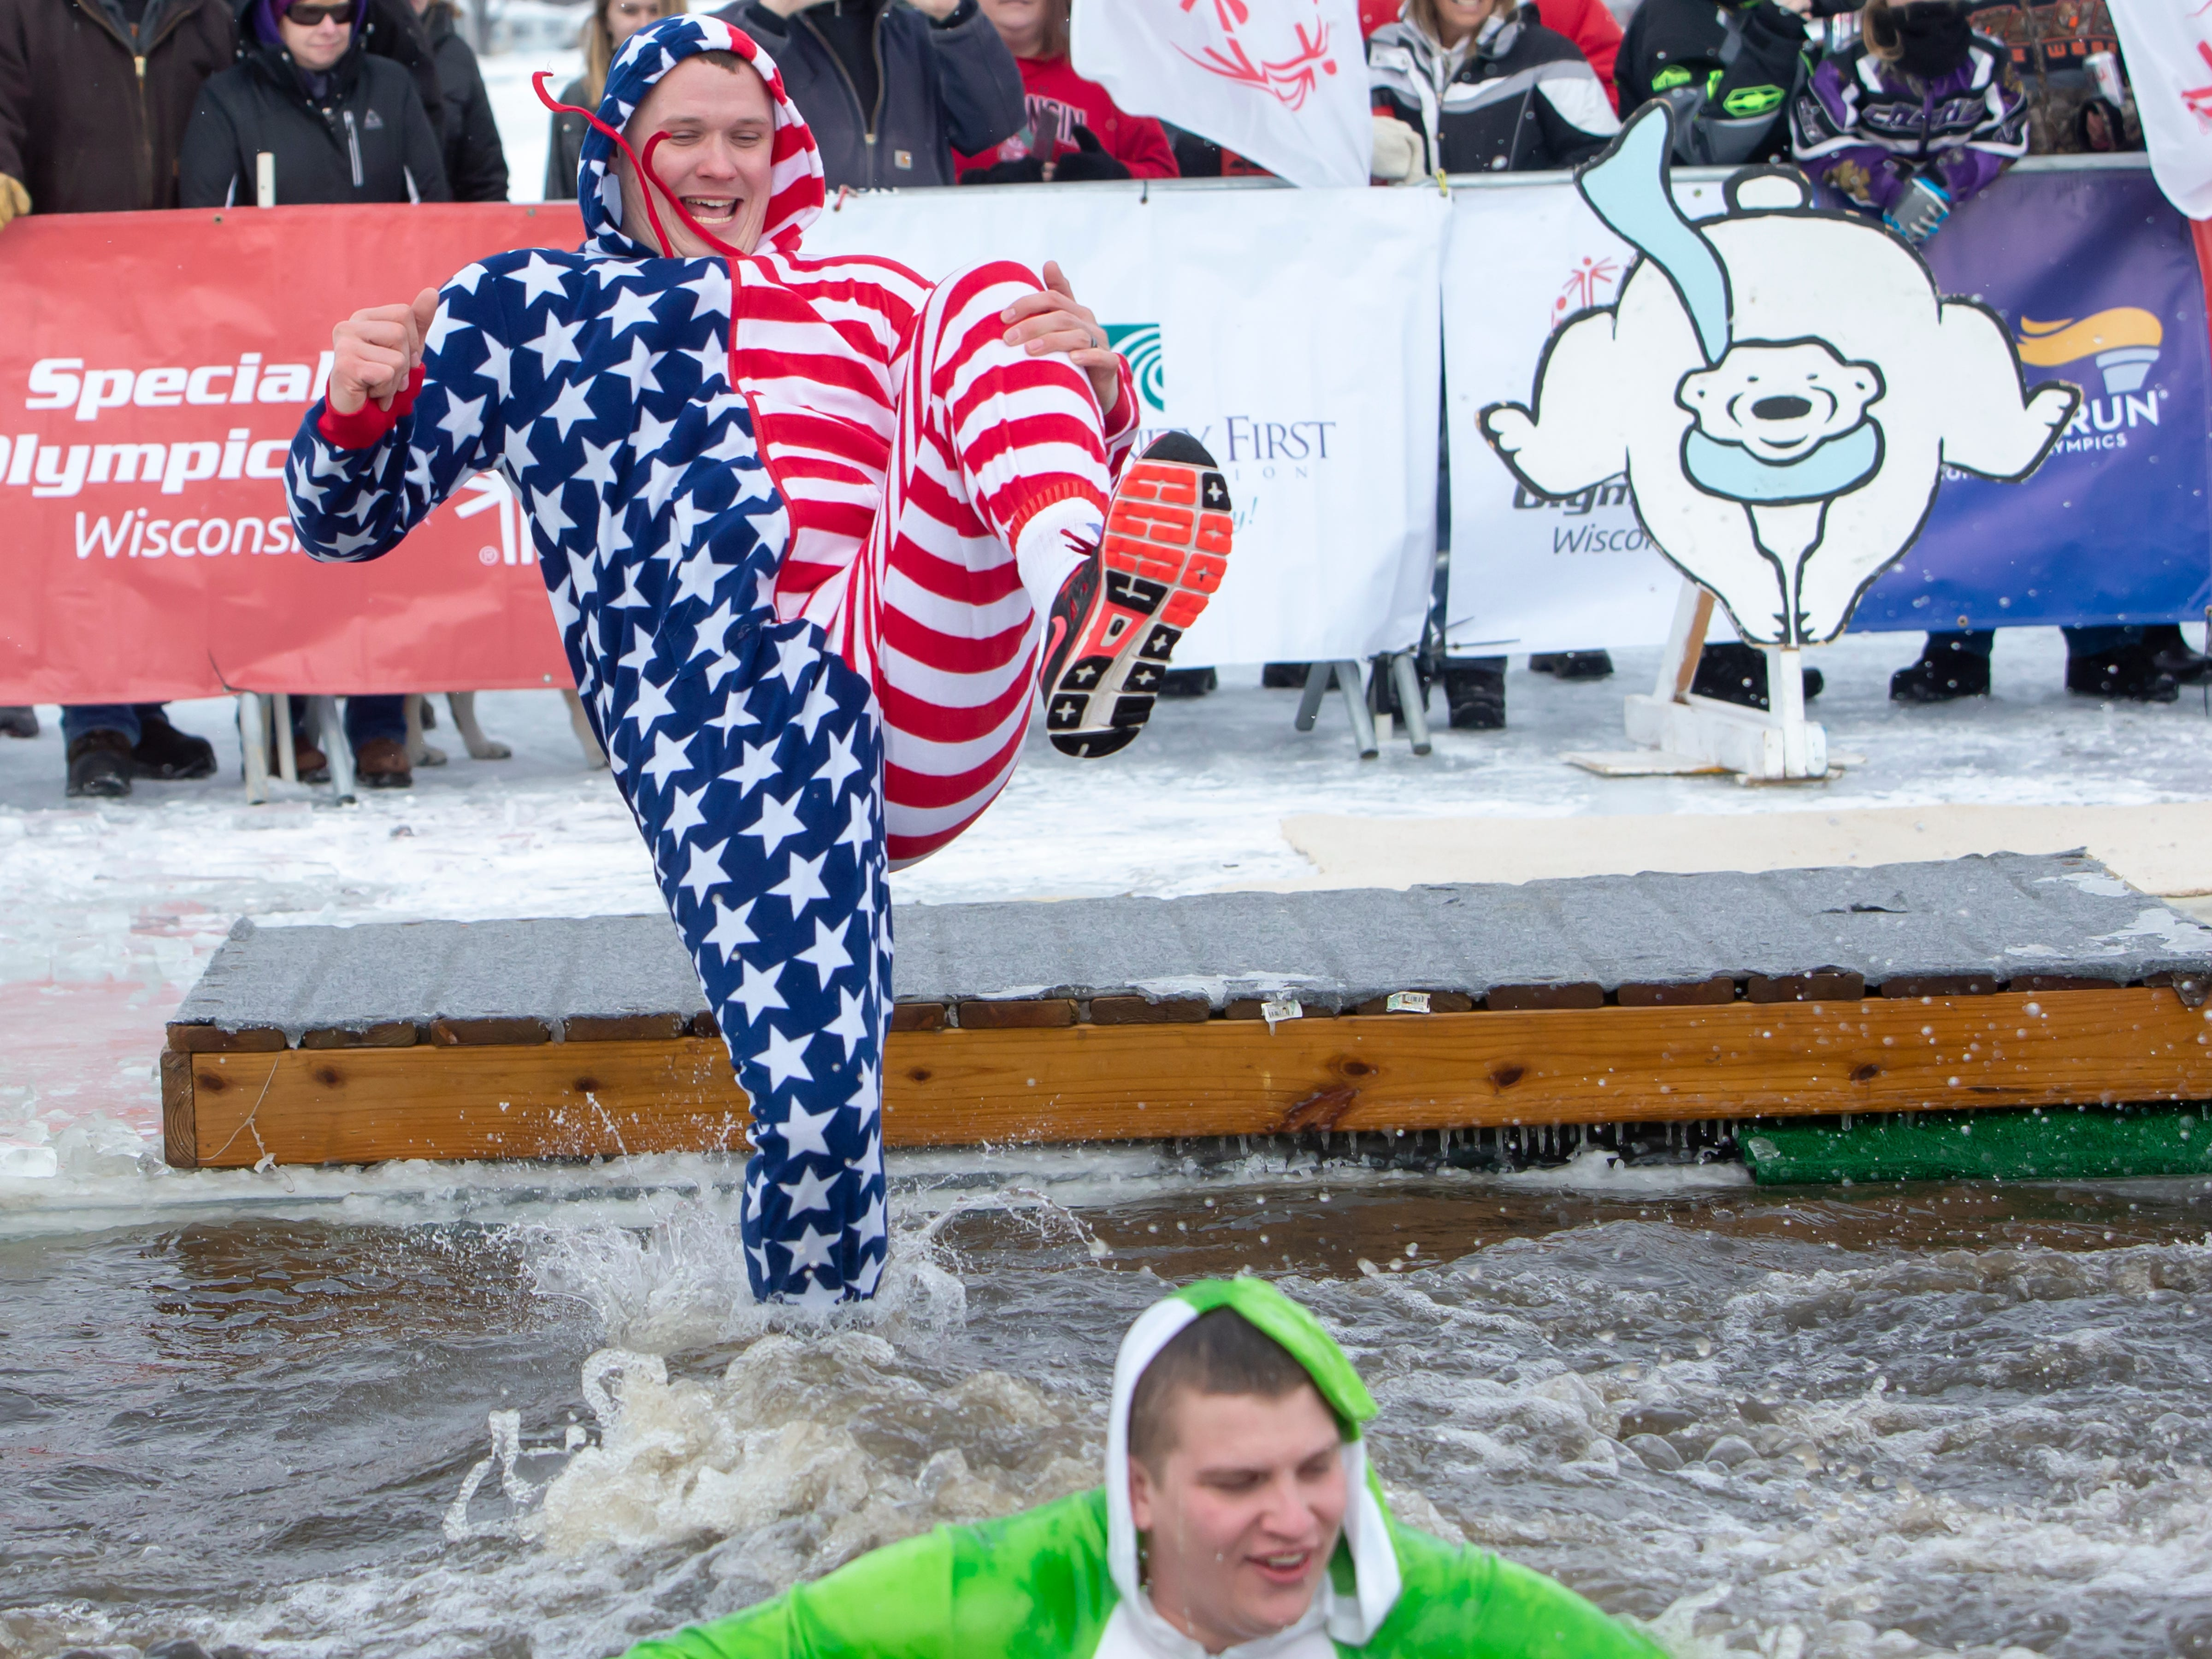 People react while entering the freezing water during the Special Olympics Wisconsin Polar Plunge in Oshkosh, Wis., on Saturday, February 16, 2019, at Miller's Bay in Menominee Park.